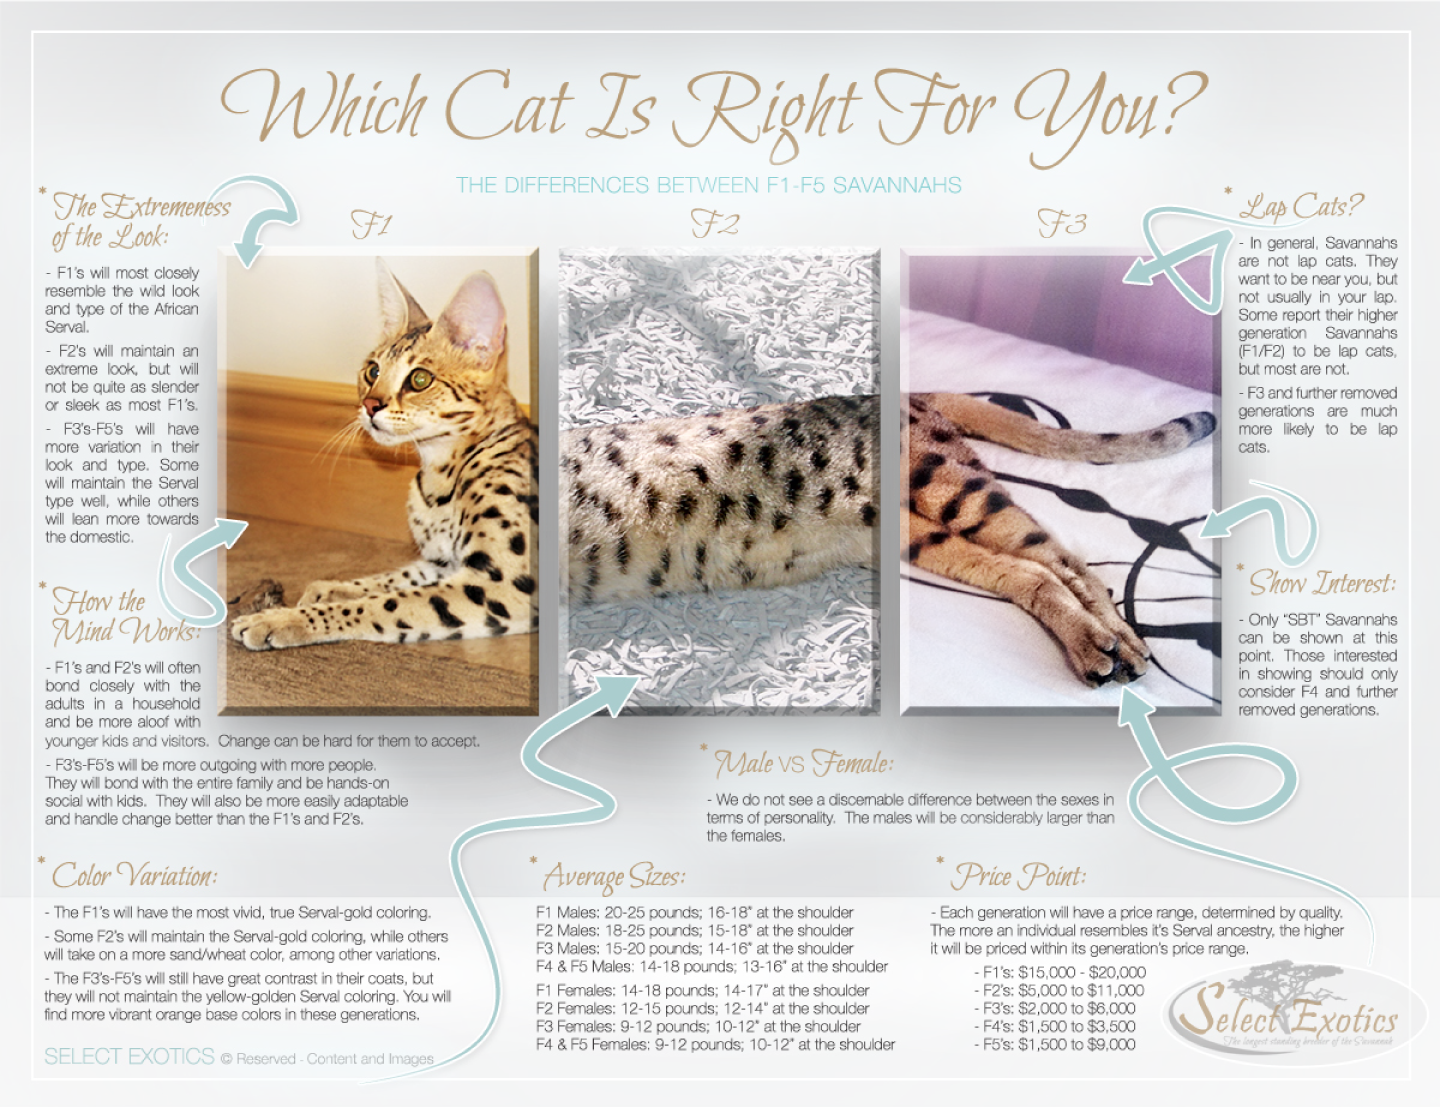 savannah cats - which one is right for you?